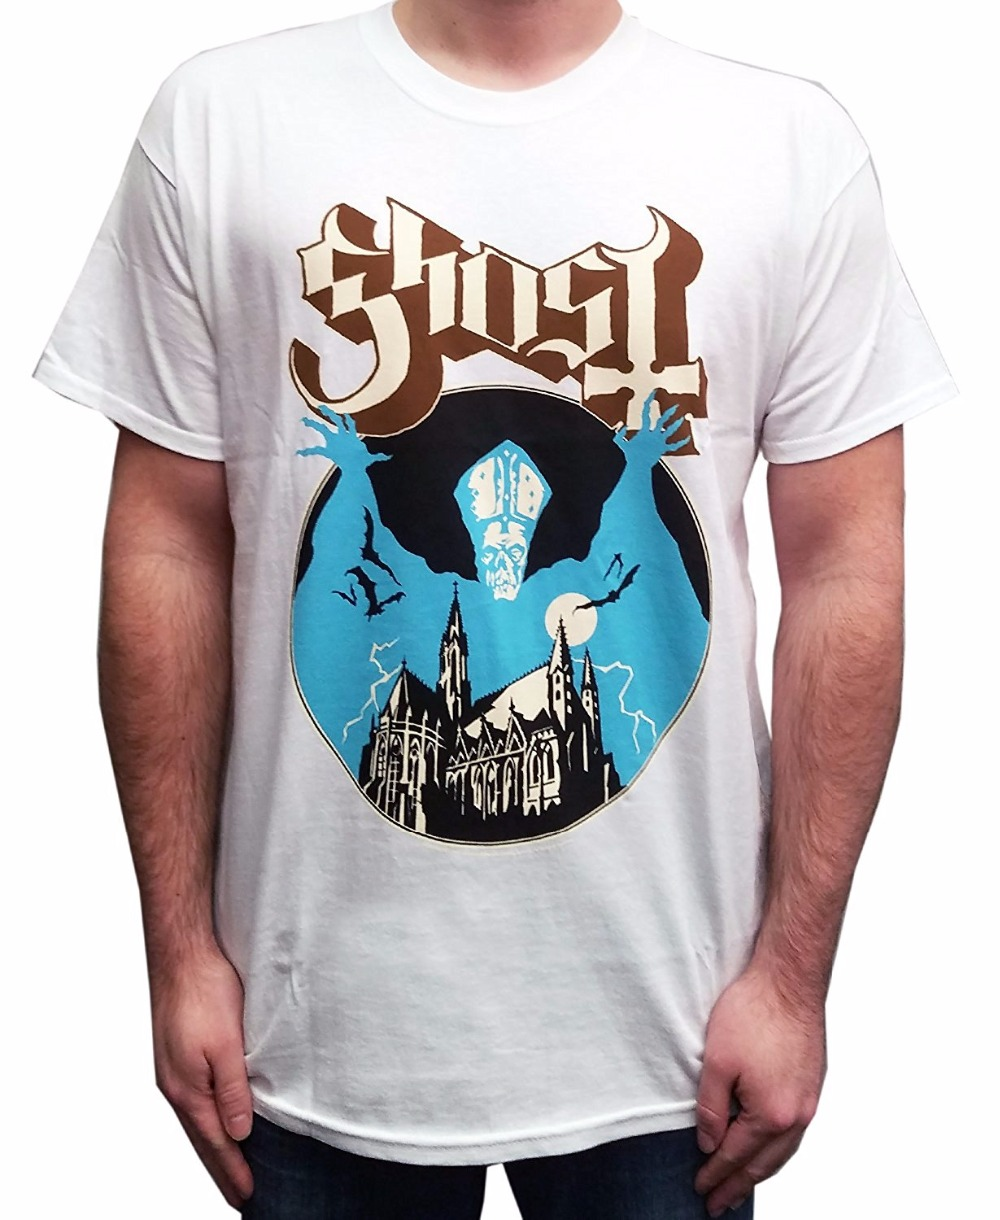 Buy Cool Shirts Crew Neck Merchandising Ghost Mens Opus Eponymous White Version T-Shirt Men Short Compression T Shirts